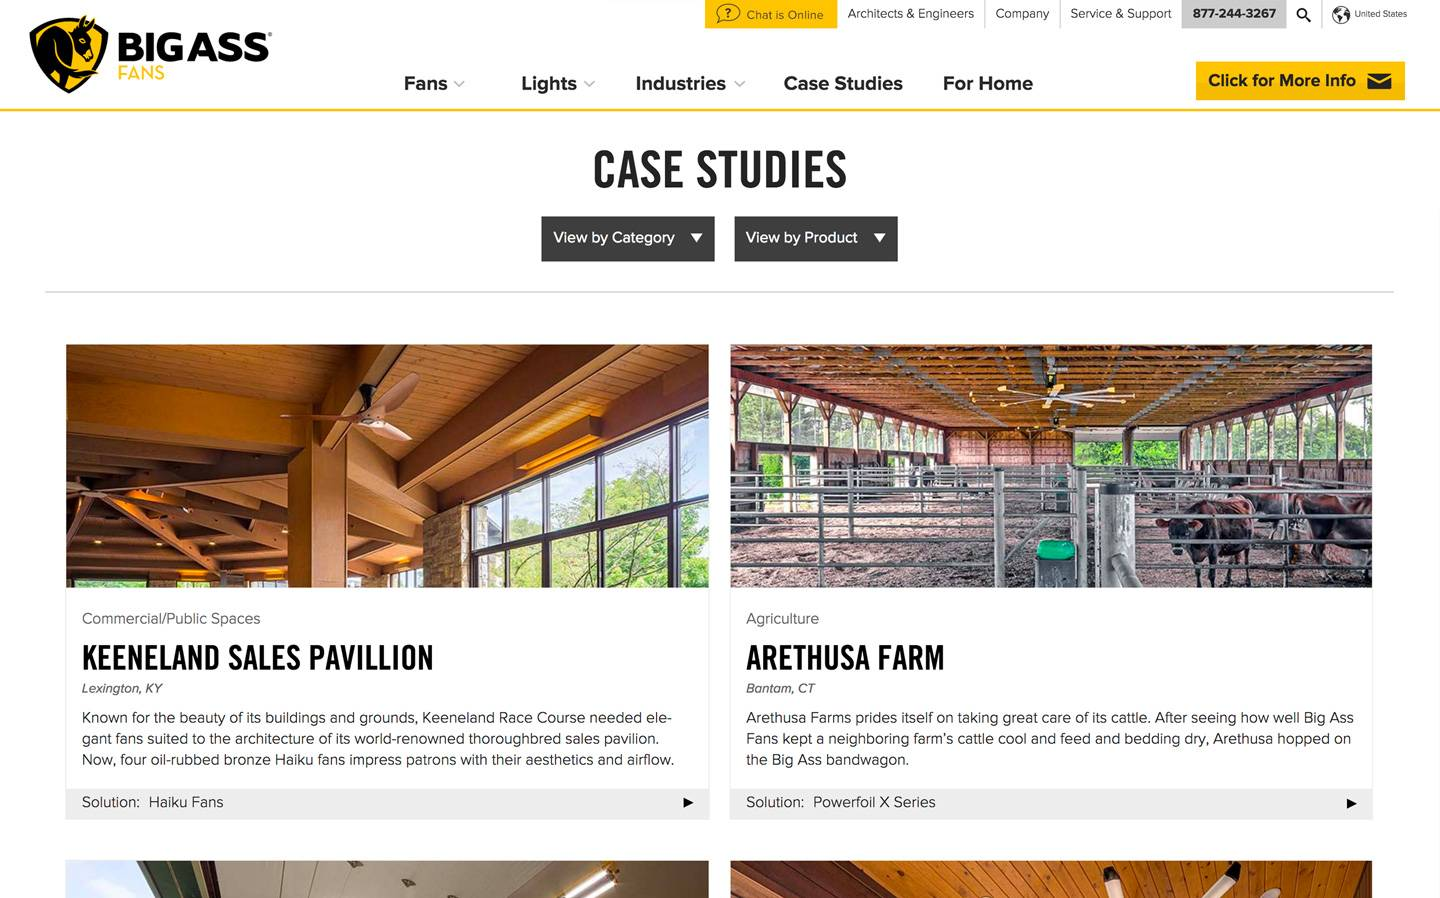 Screenshot of the Case Studies page of the Big Ass Fans website